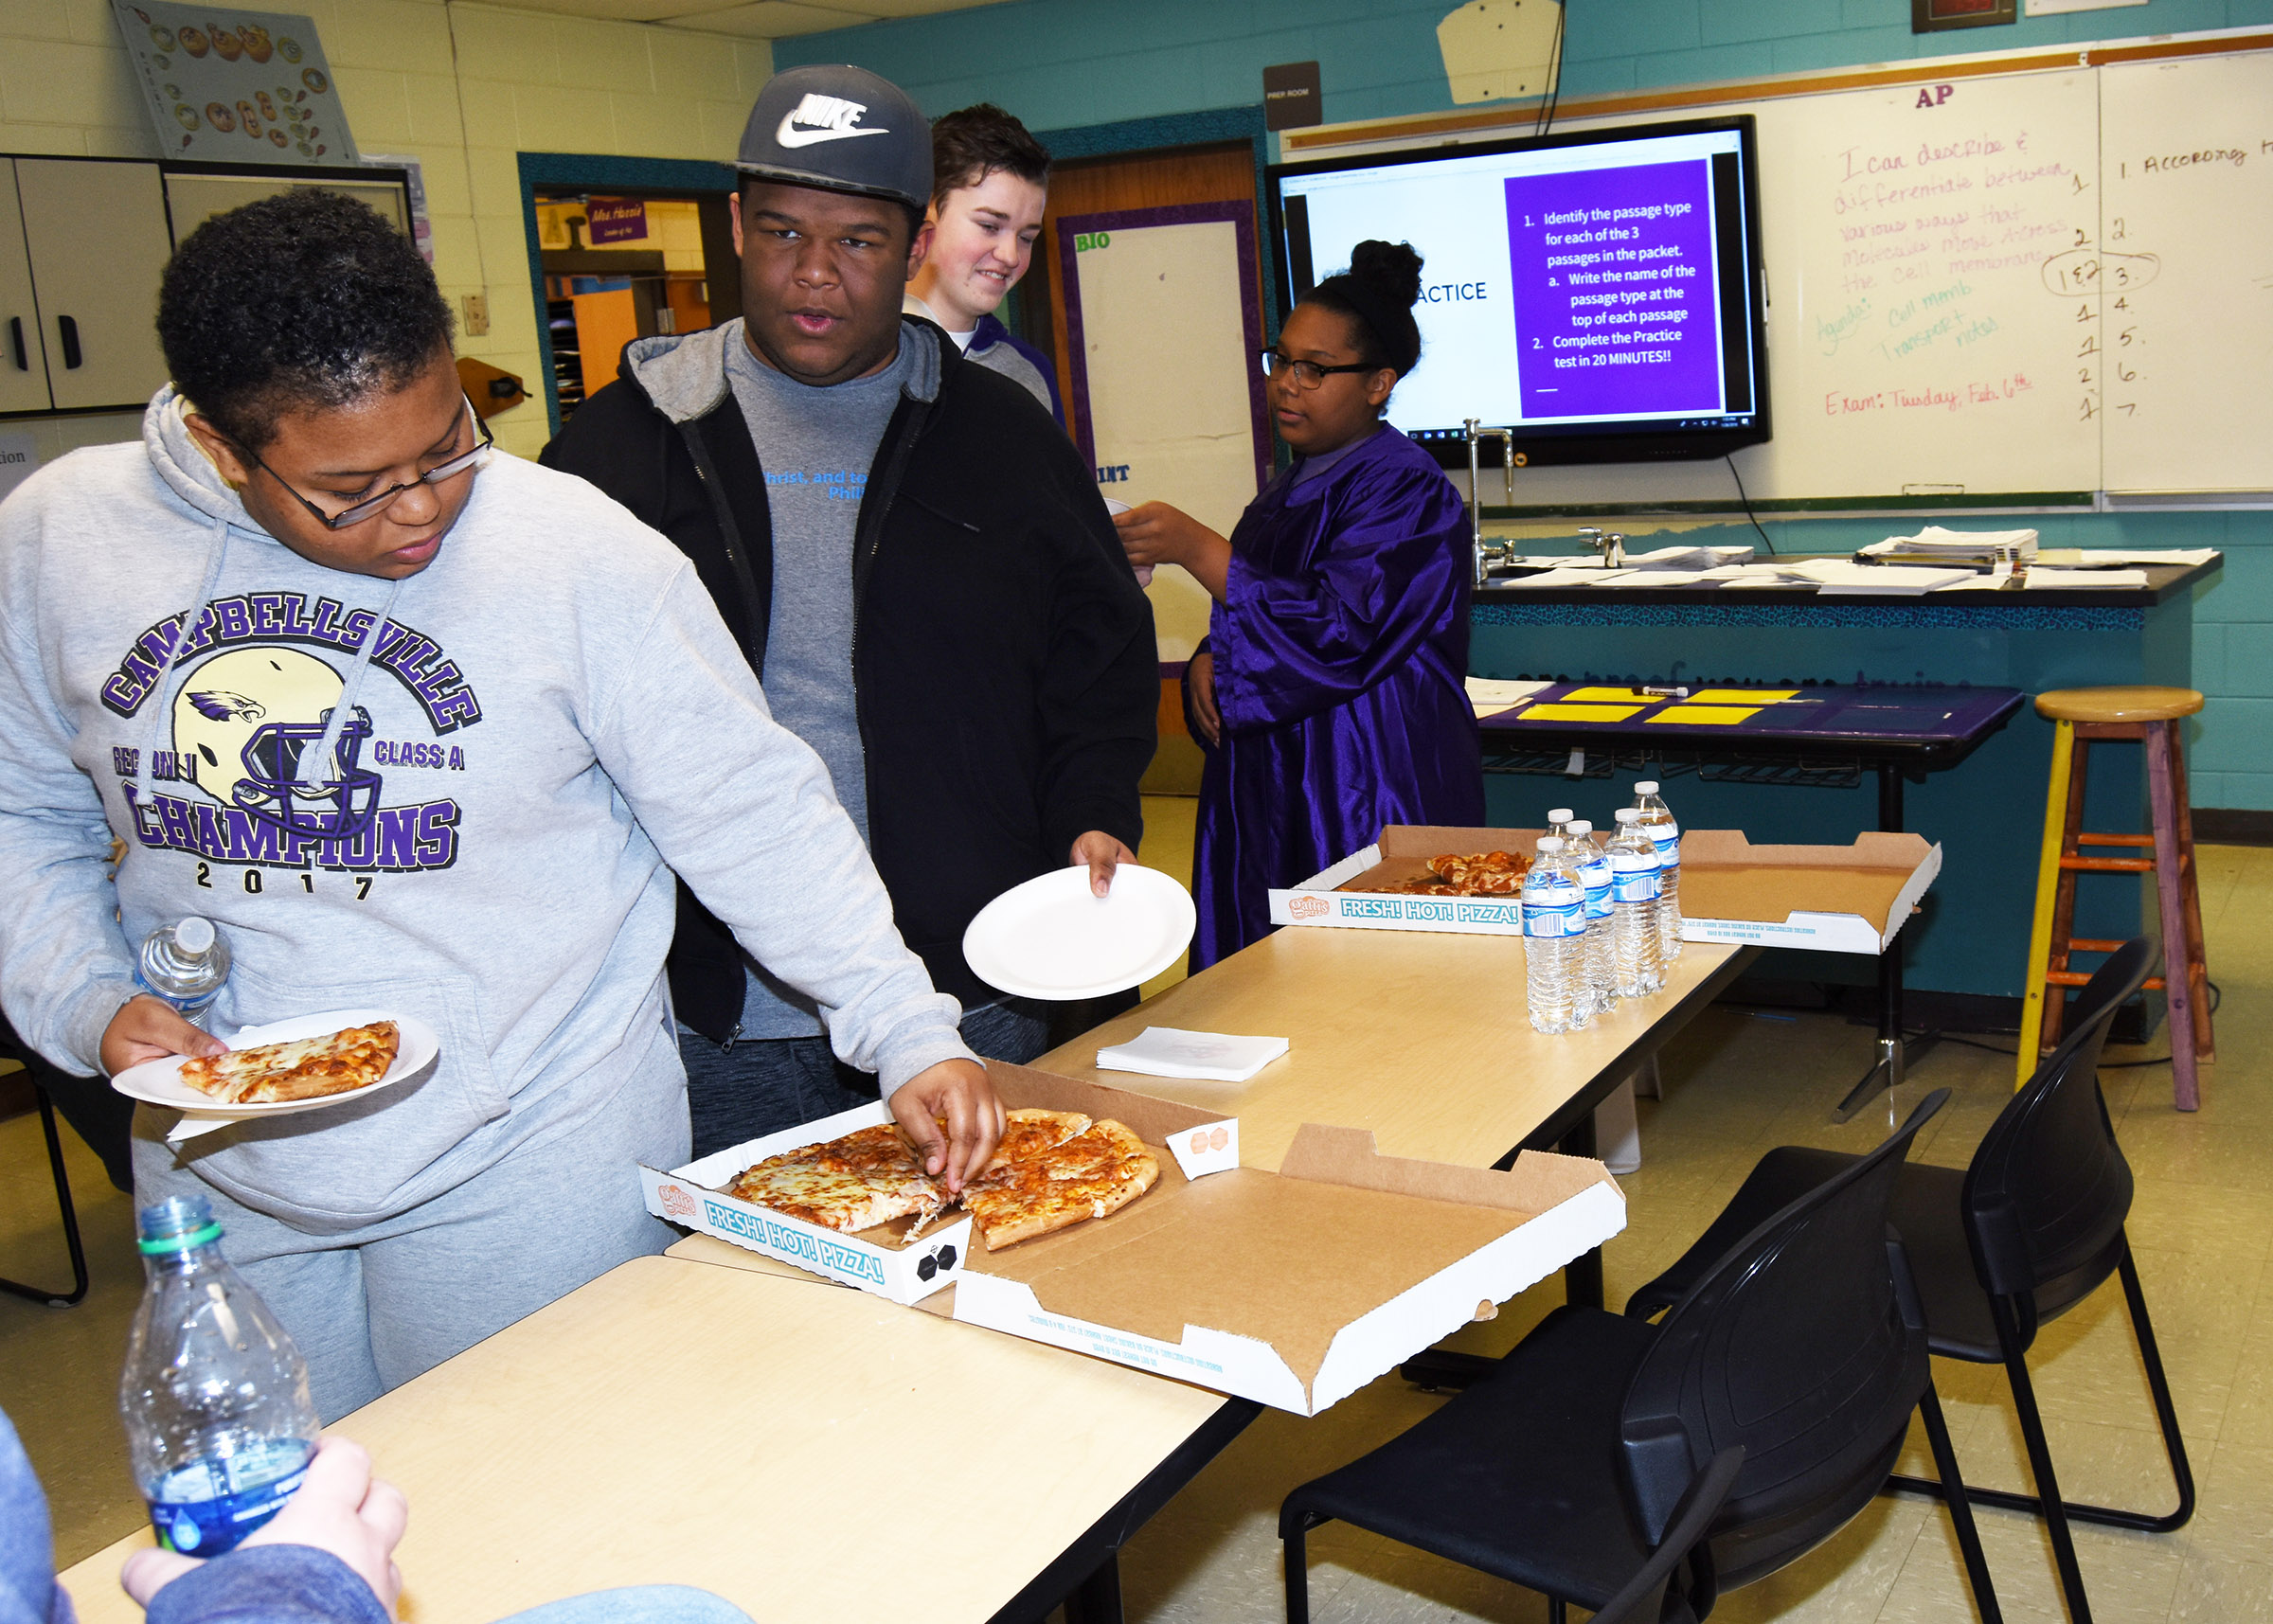 CHS students, from left, juniors Natalie Caldwell and Jeremiah Jackson and sophomores Gavin Johnson and Zaria Cowan are served pizza during their ACT workshop.